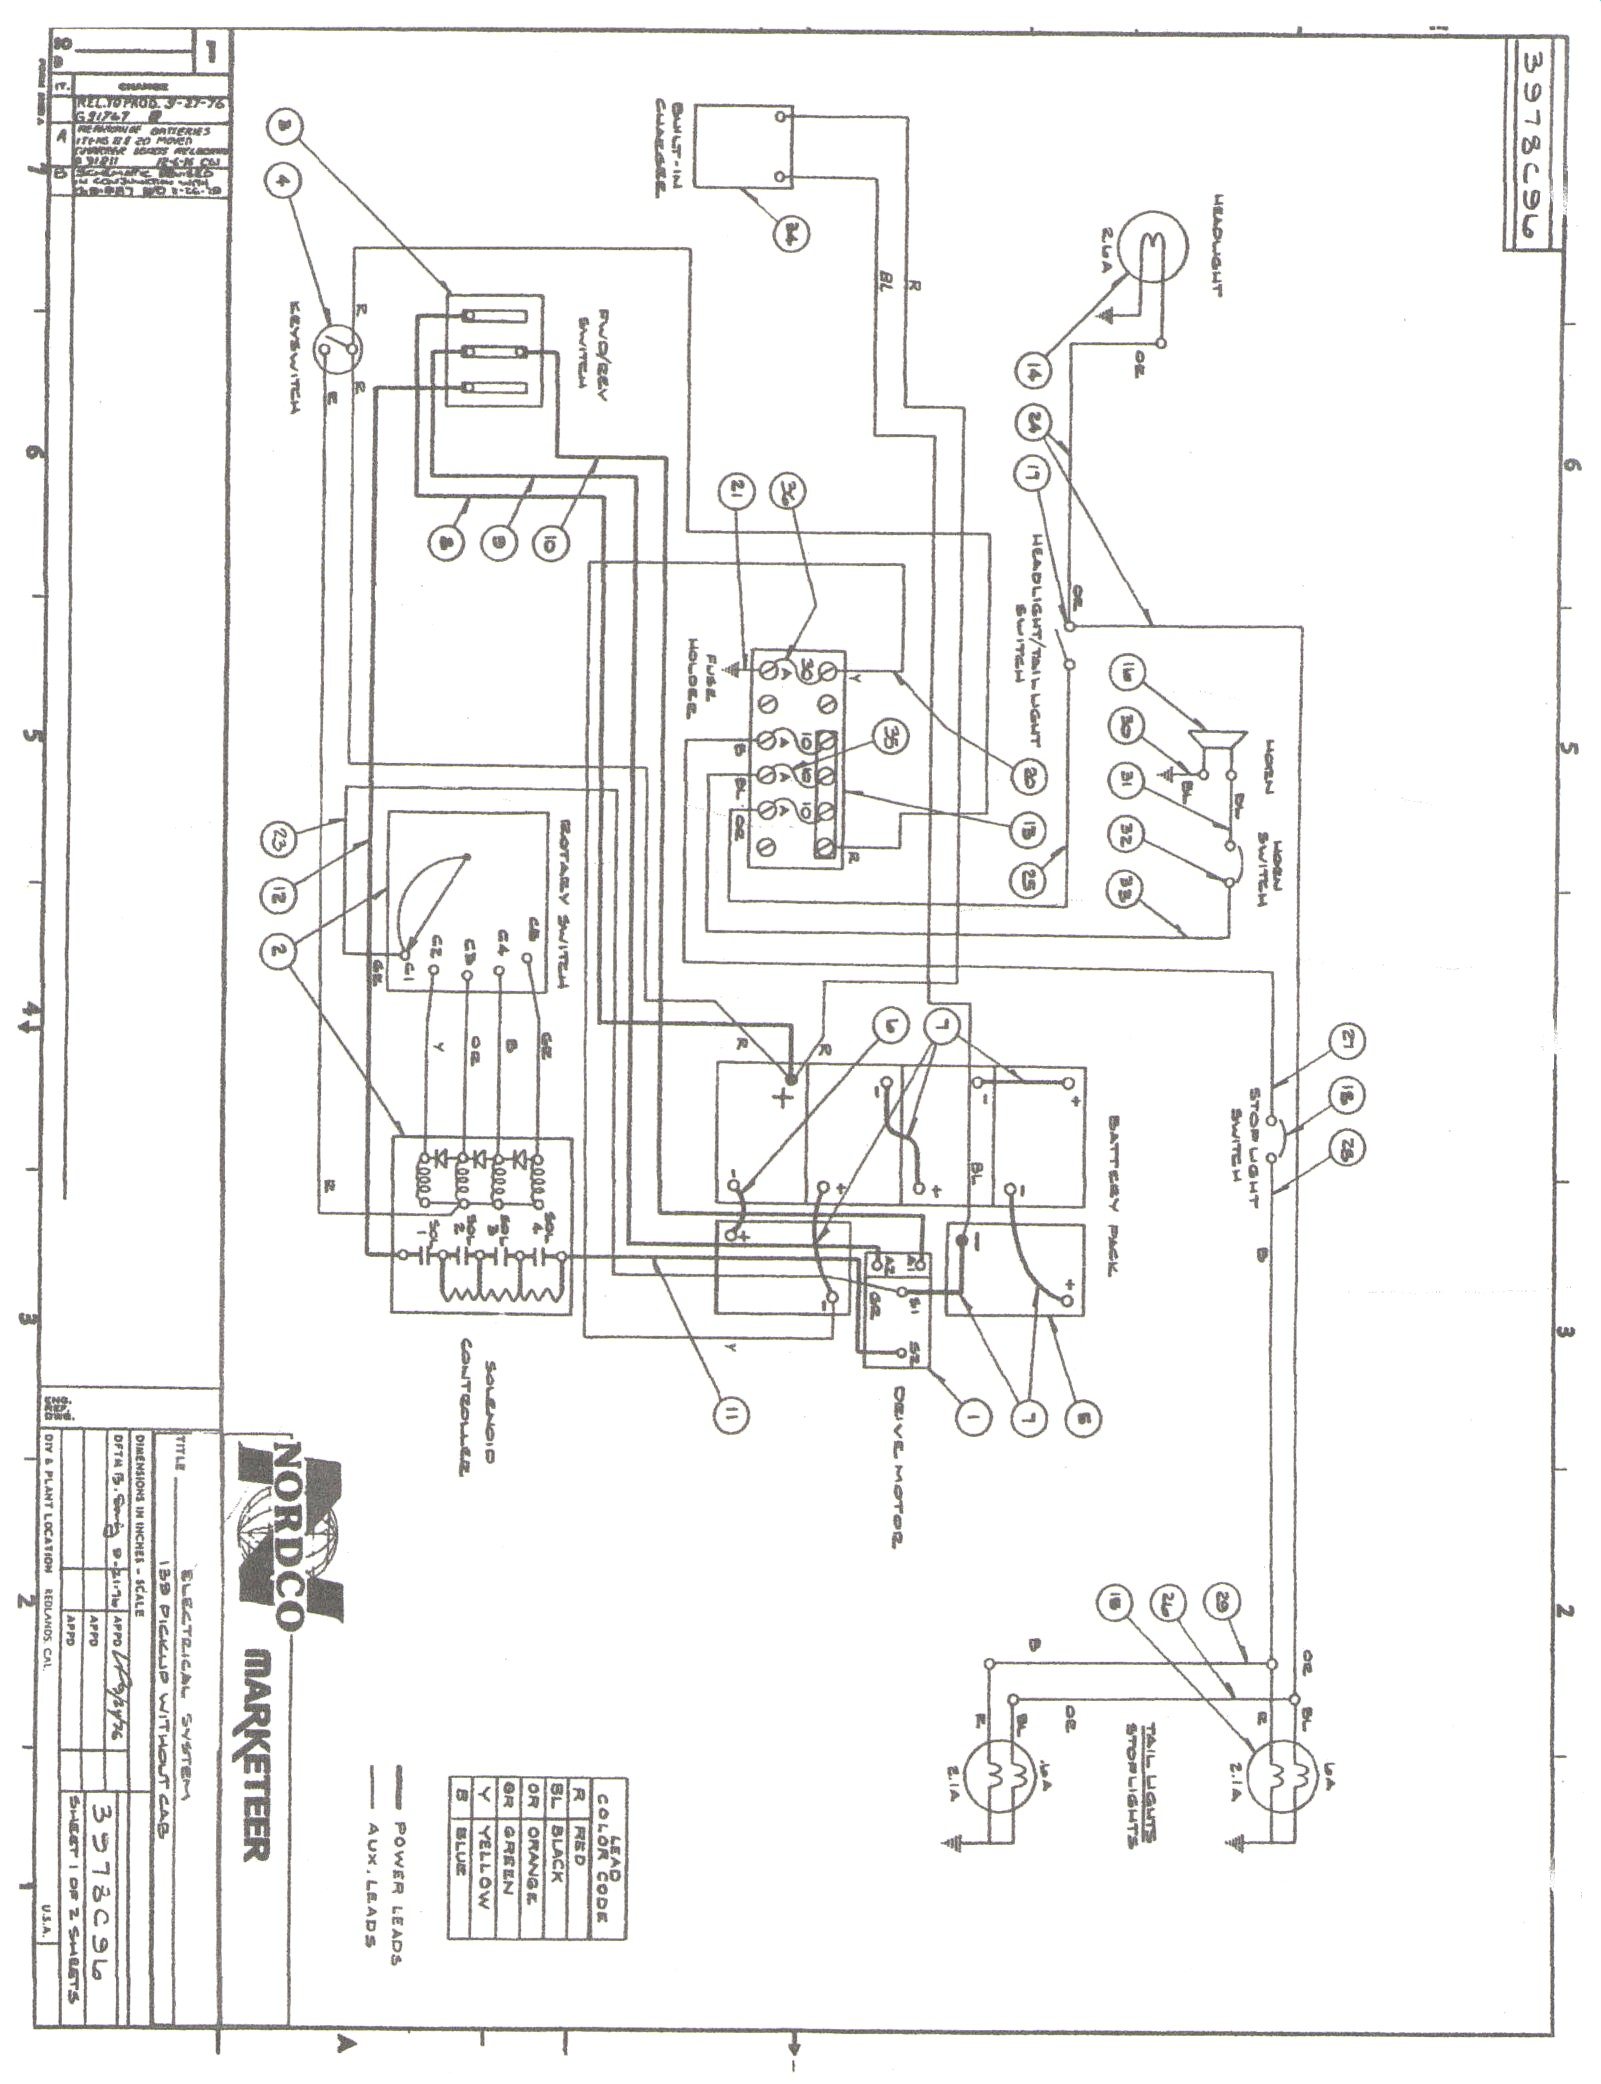 PU515_wiring_diagram?resize=665%2C866 wiring diagram for ezgo gas golf cart the wiring diagram 1996 ez go wiring diagram at crackthecode.co